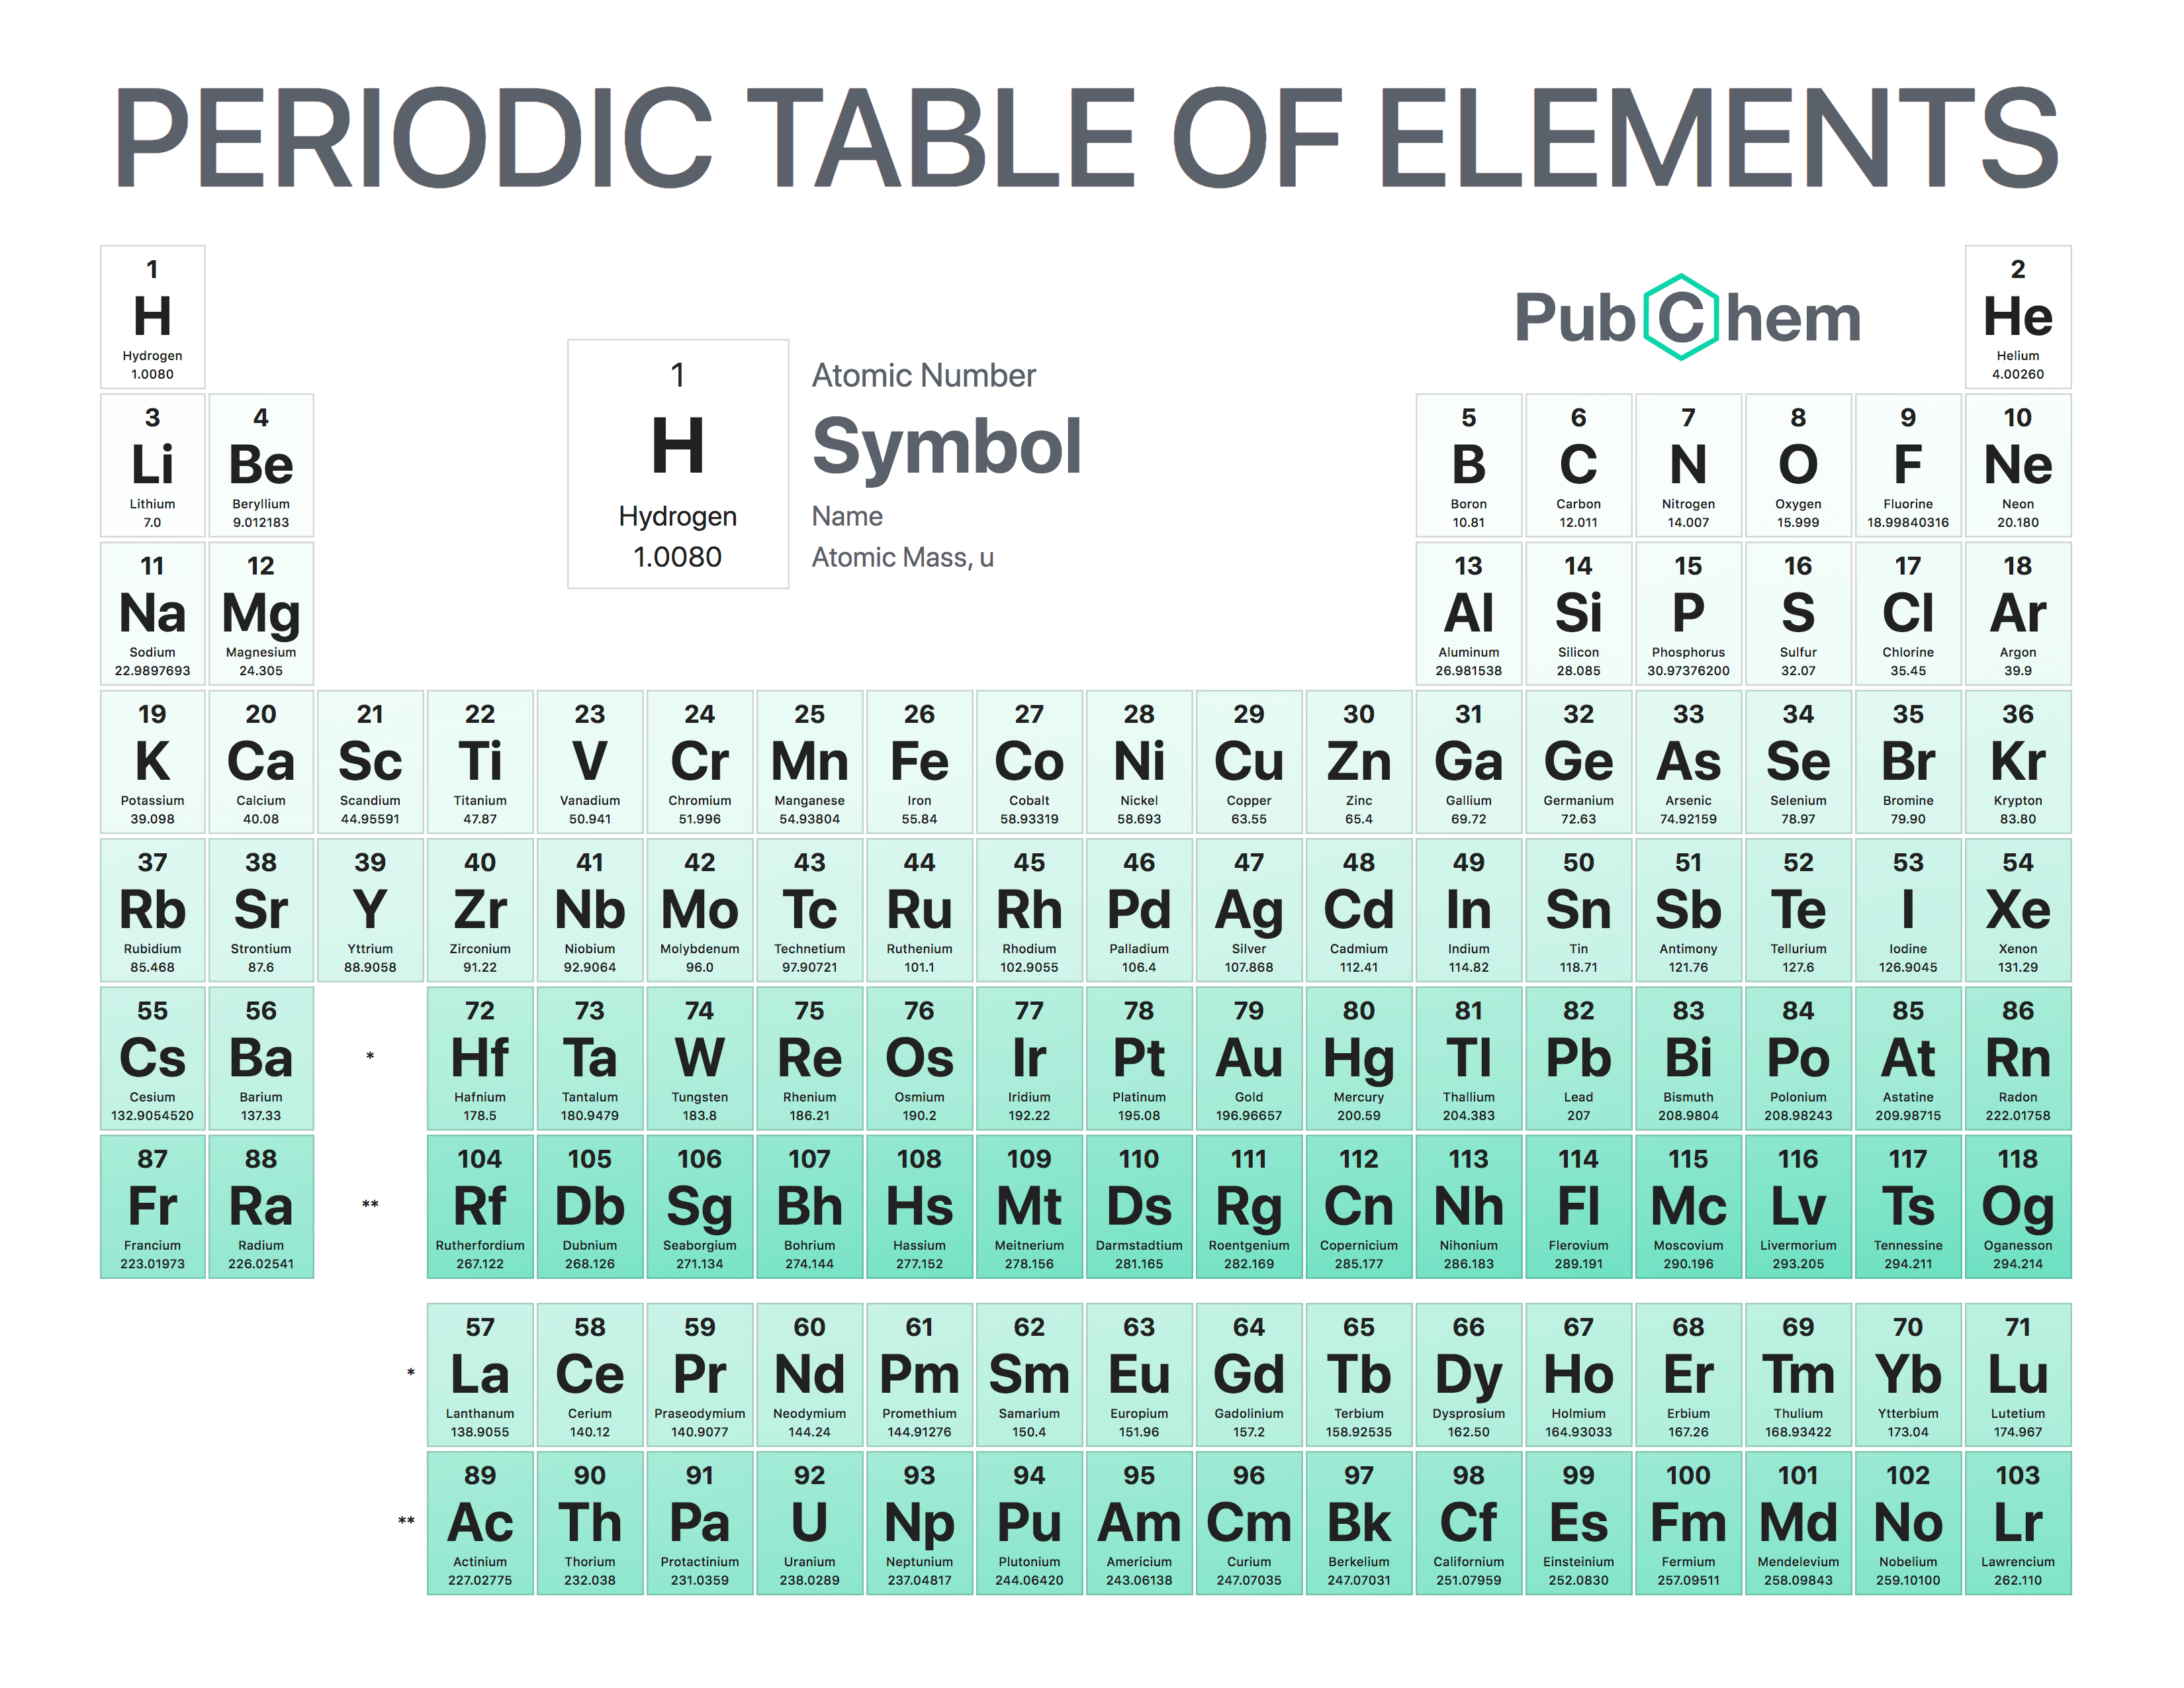 2.7: The Periodic TableRecommended articles